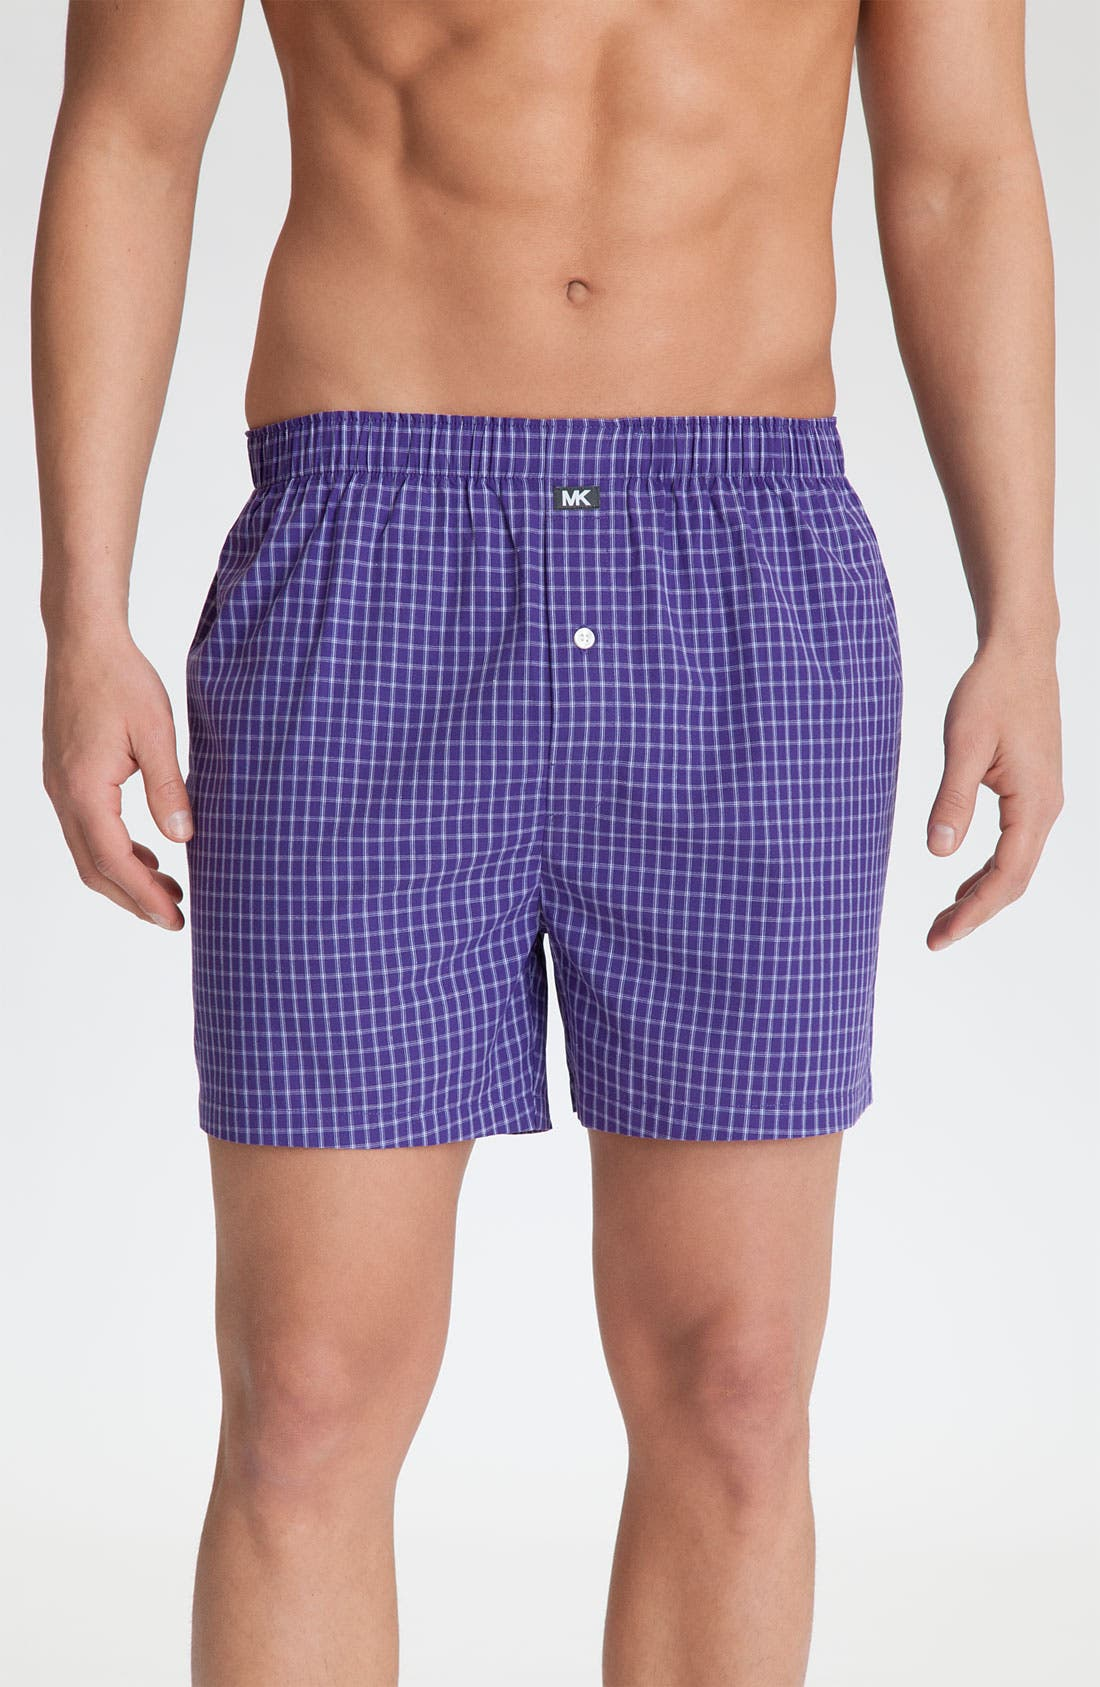 Alternate Image 2  - Michael Kors Woven Boxers (Assorted 2-Pack)